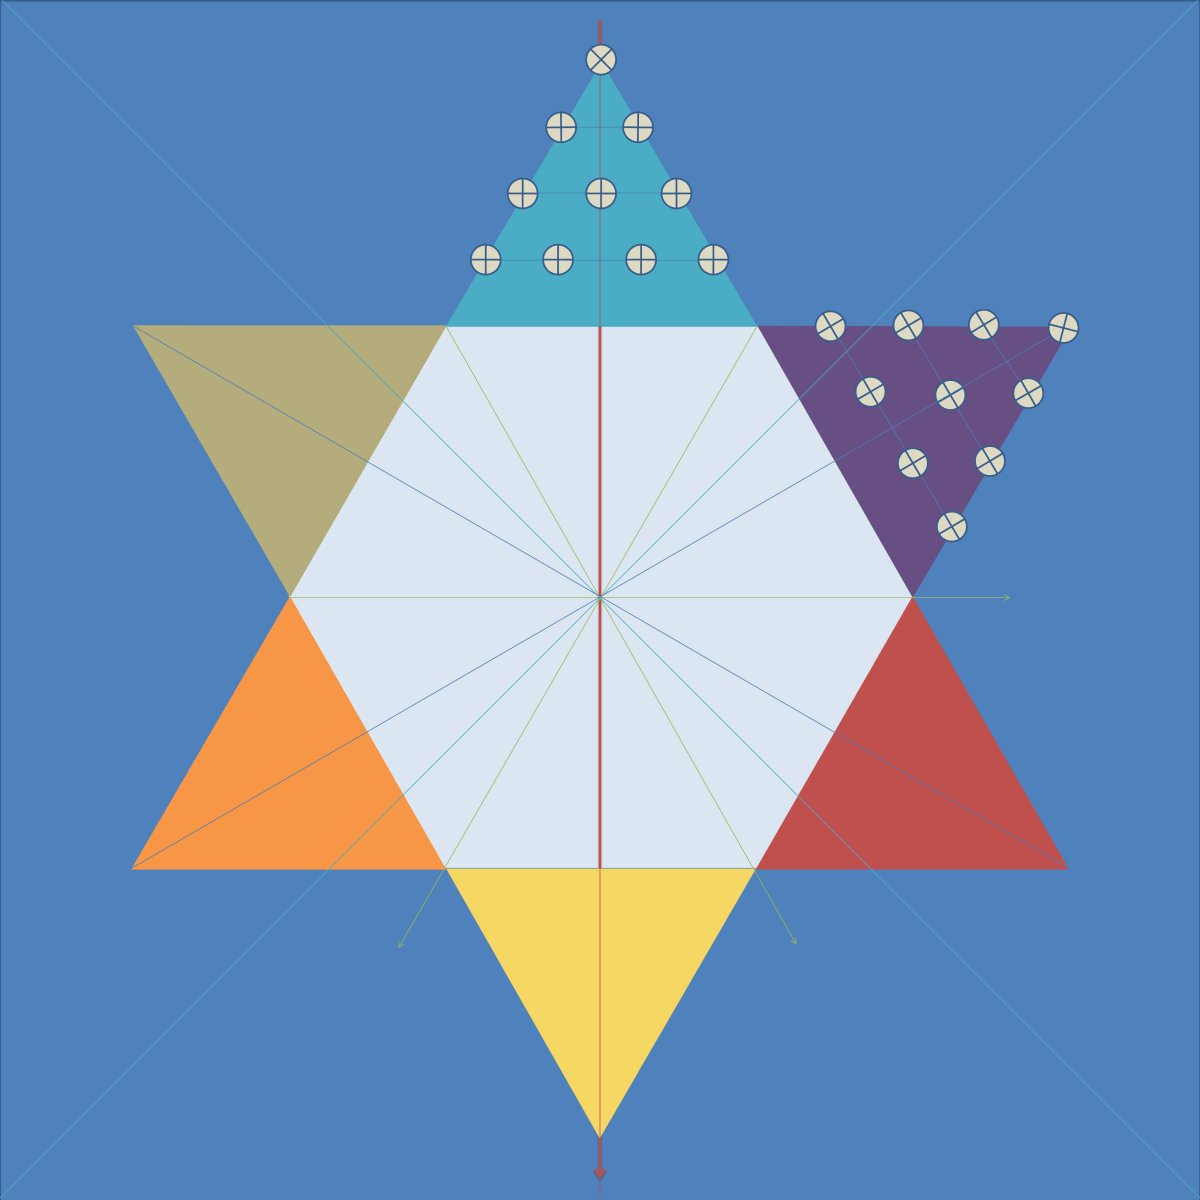 Figure 4 - Starting with 10 point marks for each triangle...